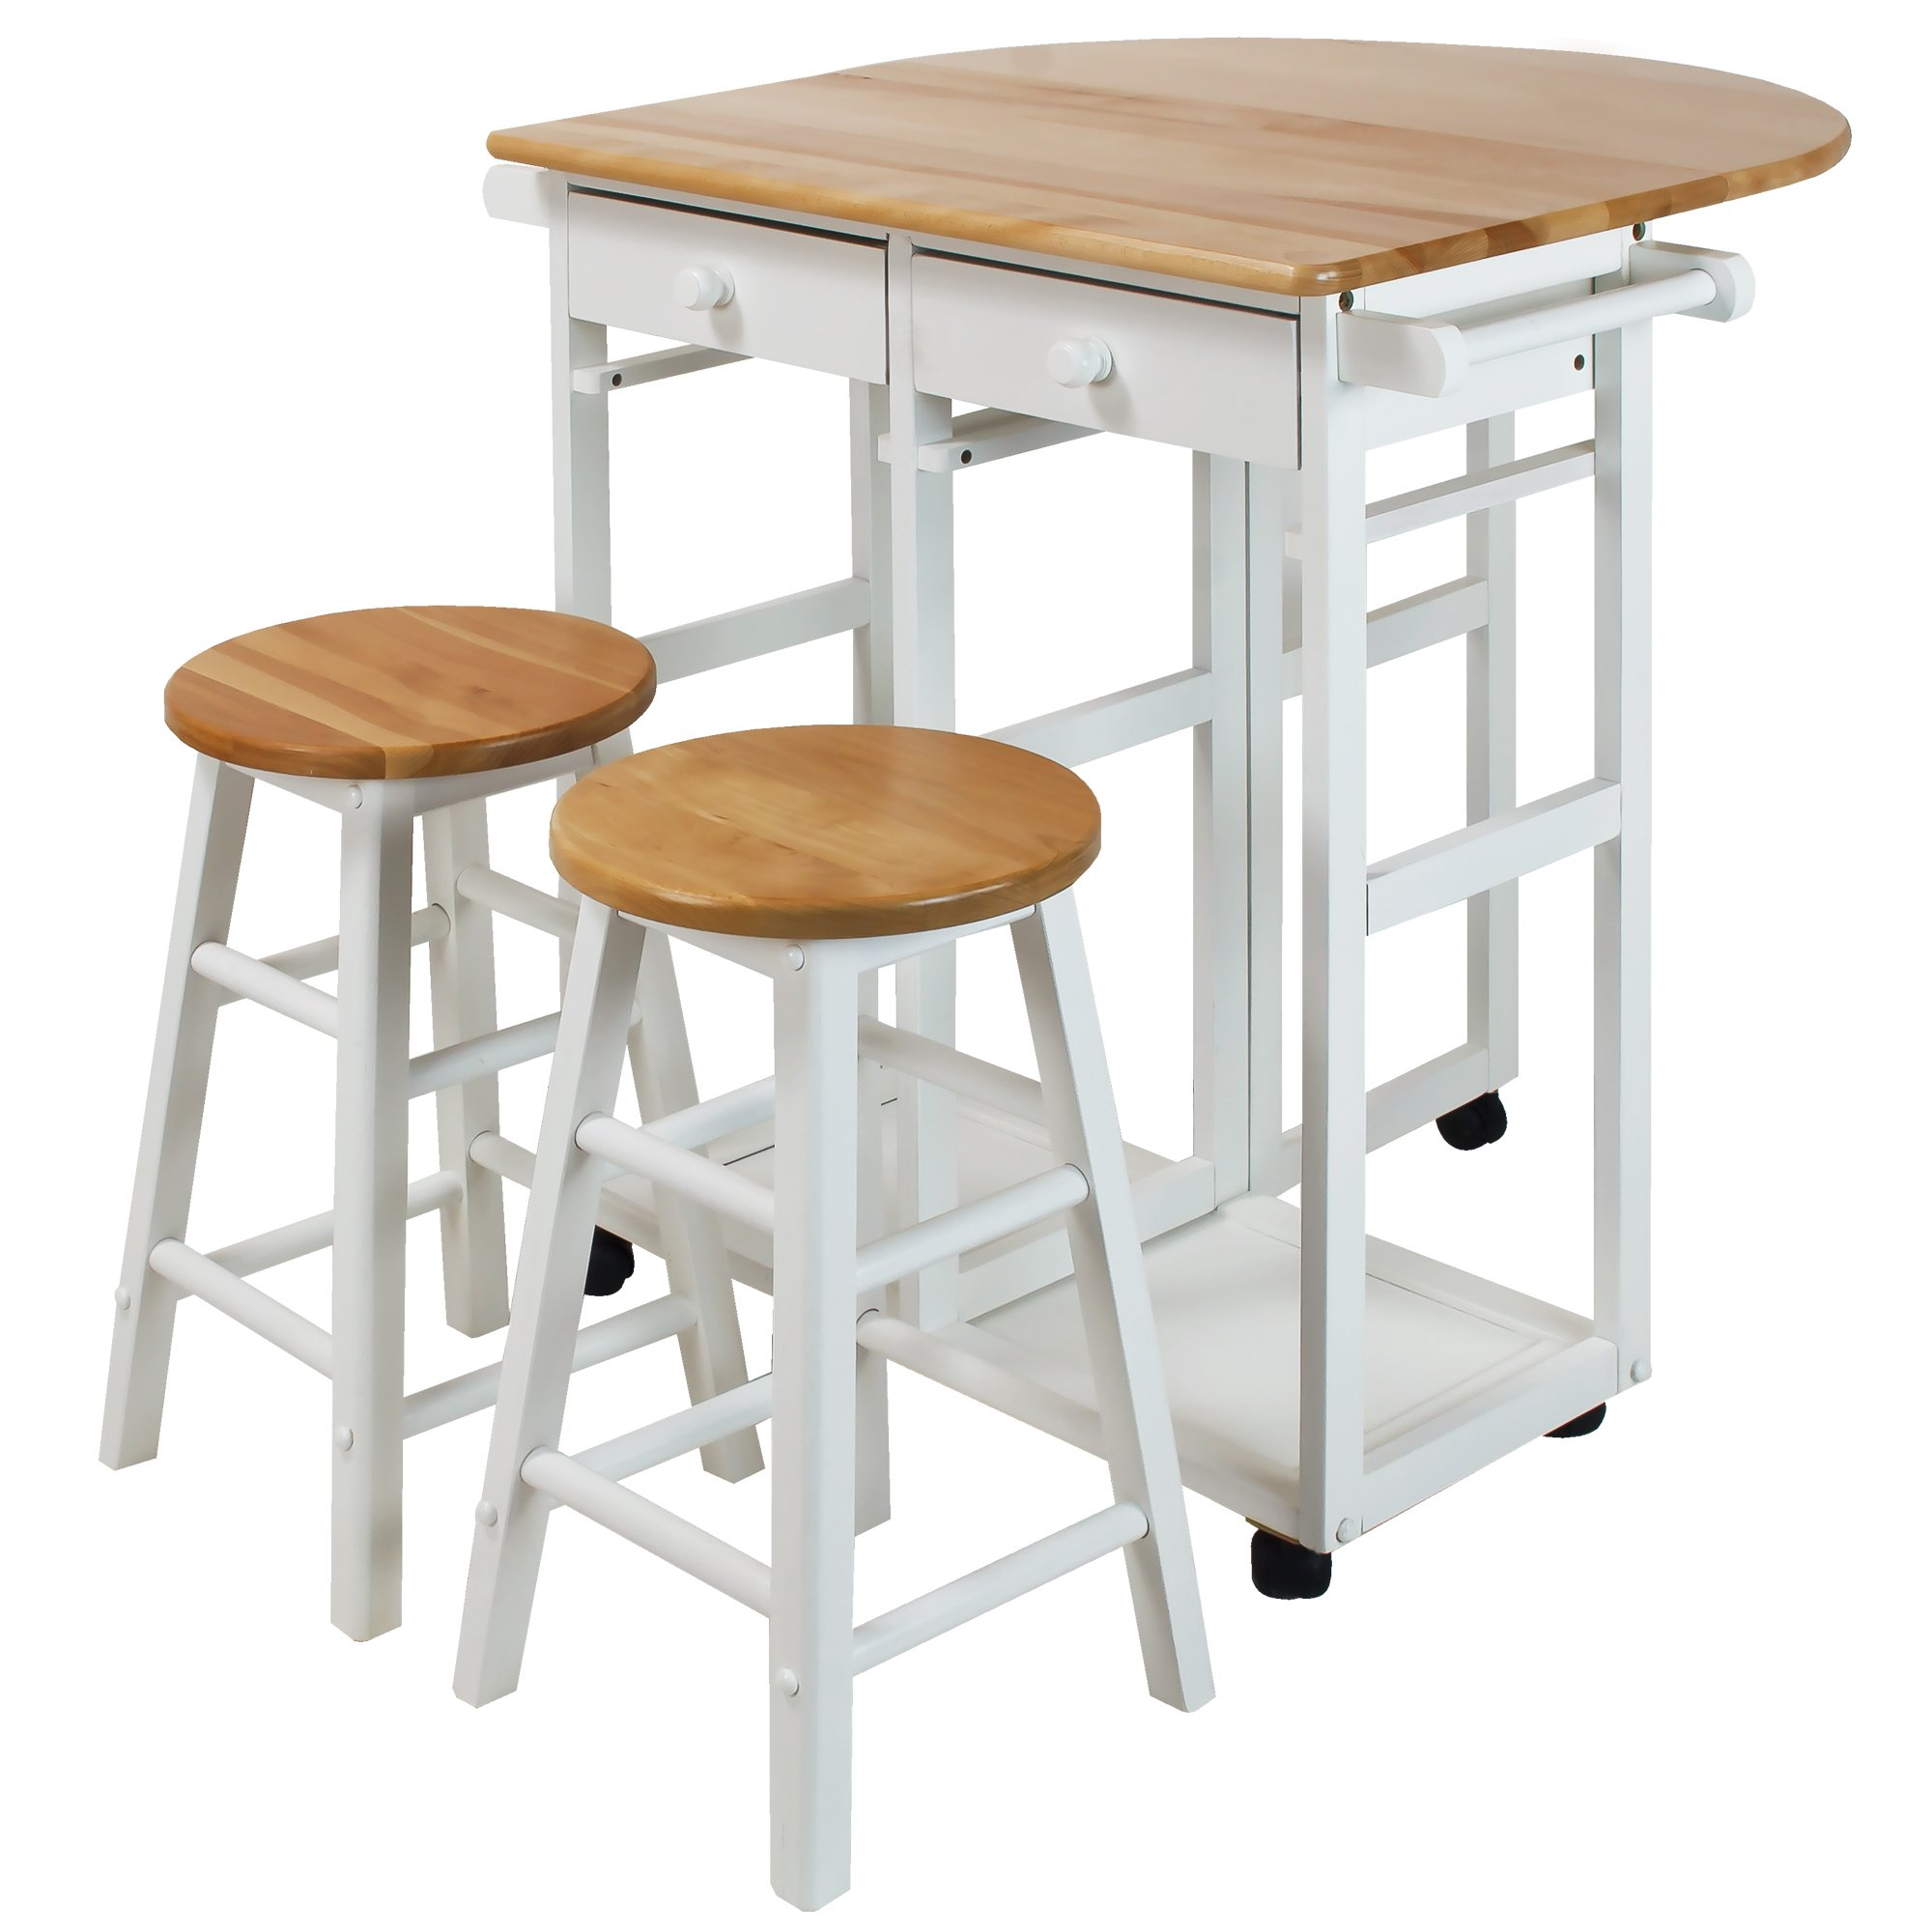 Casual Home 355-21 Drop Leaf Breakfast Cart with 2 Stools-White by Casual Home